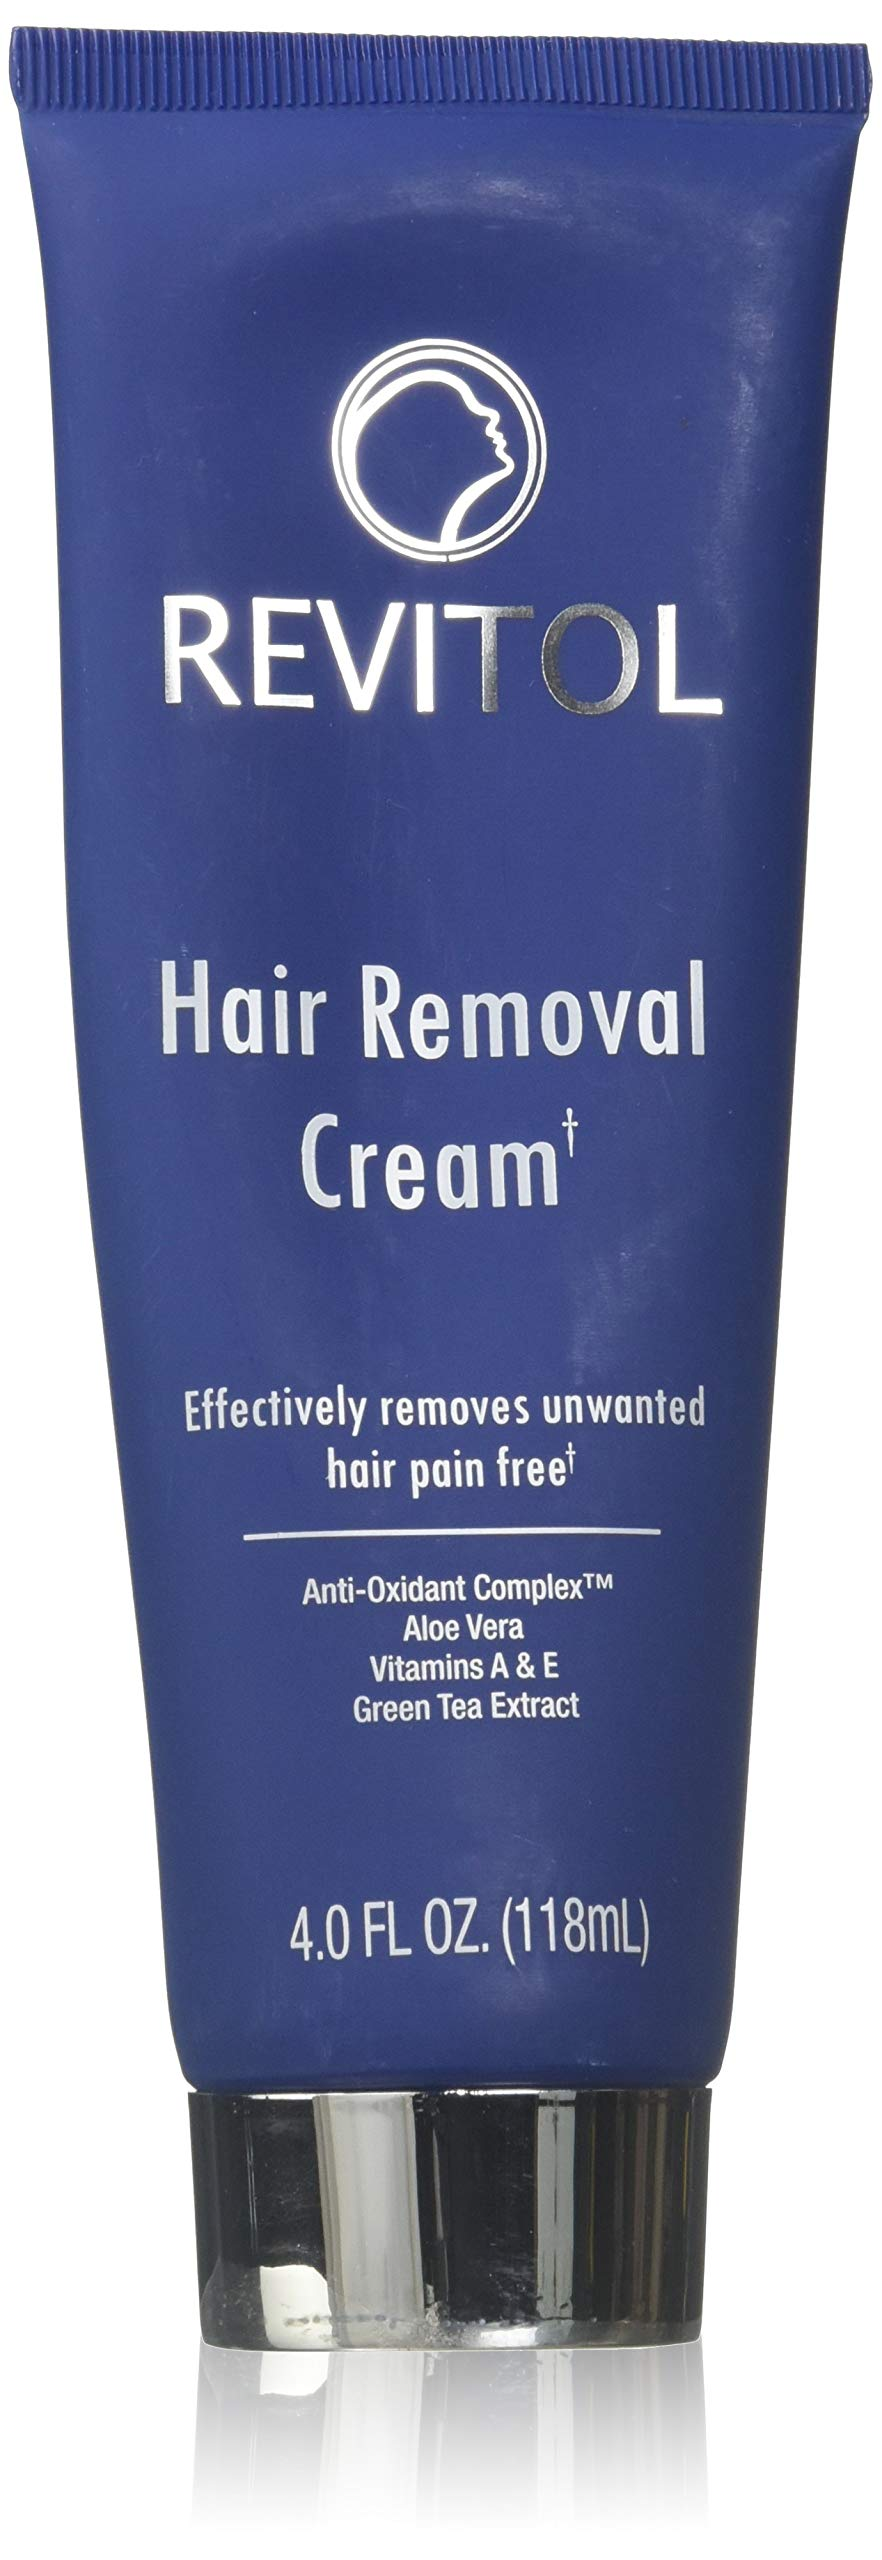 Revitol Hair Removal Treatment Cream Remove Unwanted Hair Gentle